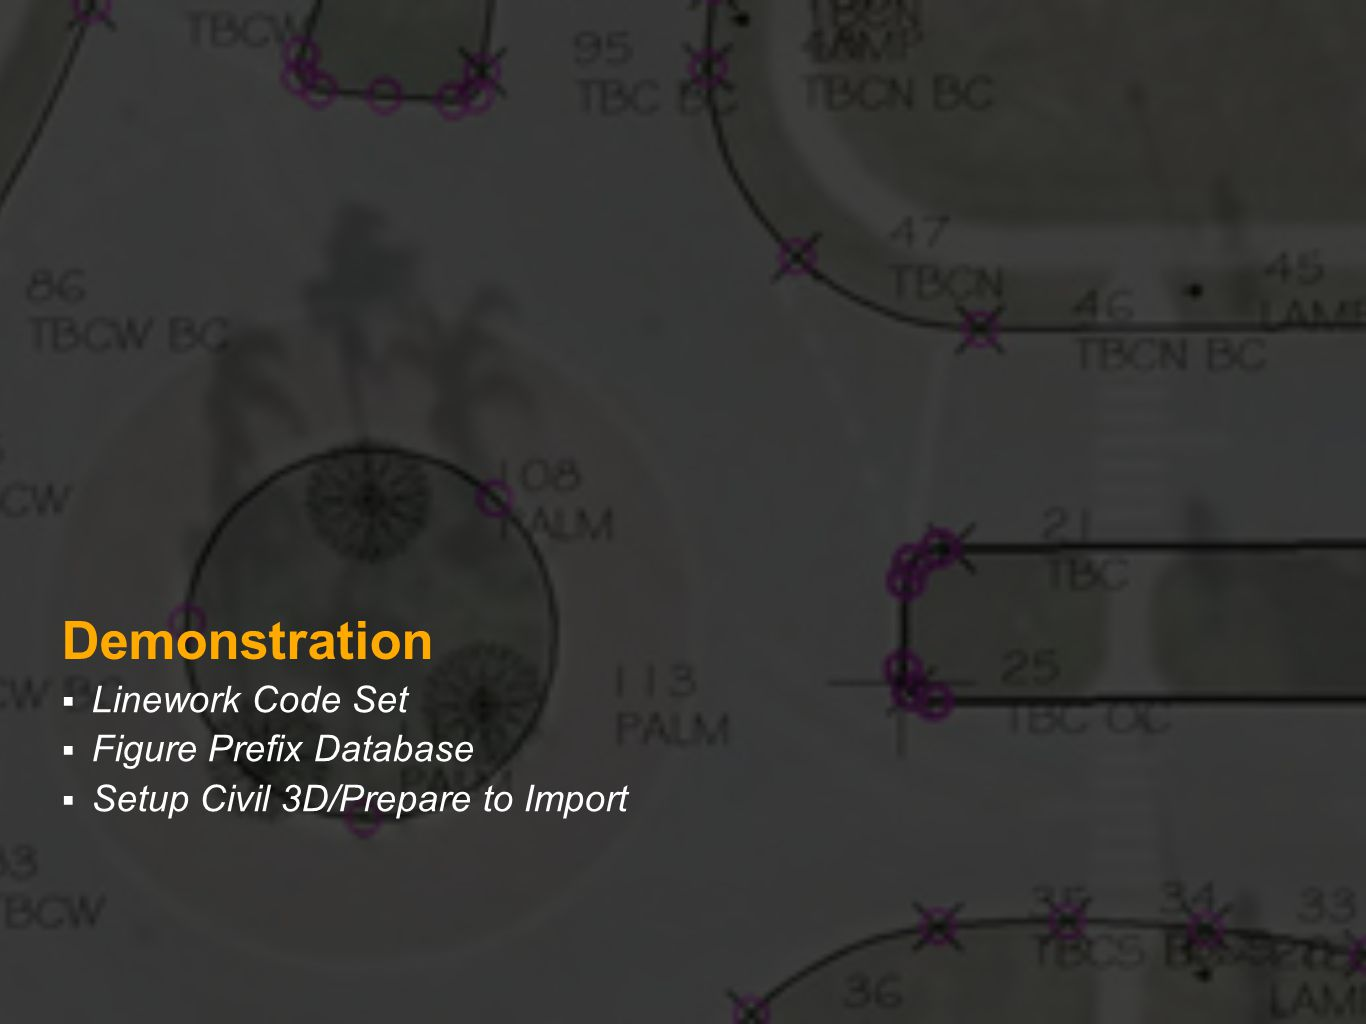 """Field to Finish"""" Working with AutoCAD Civil 3D - ppt video online"""